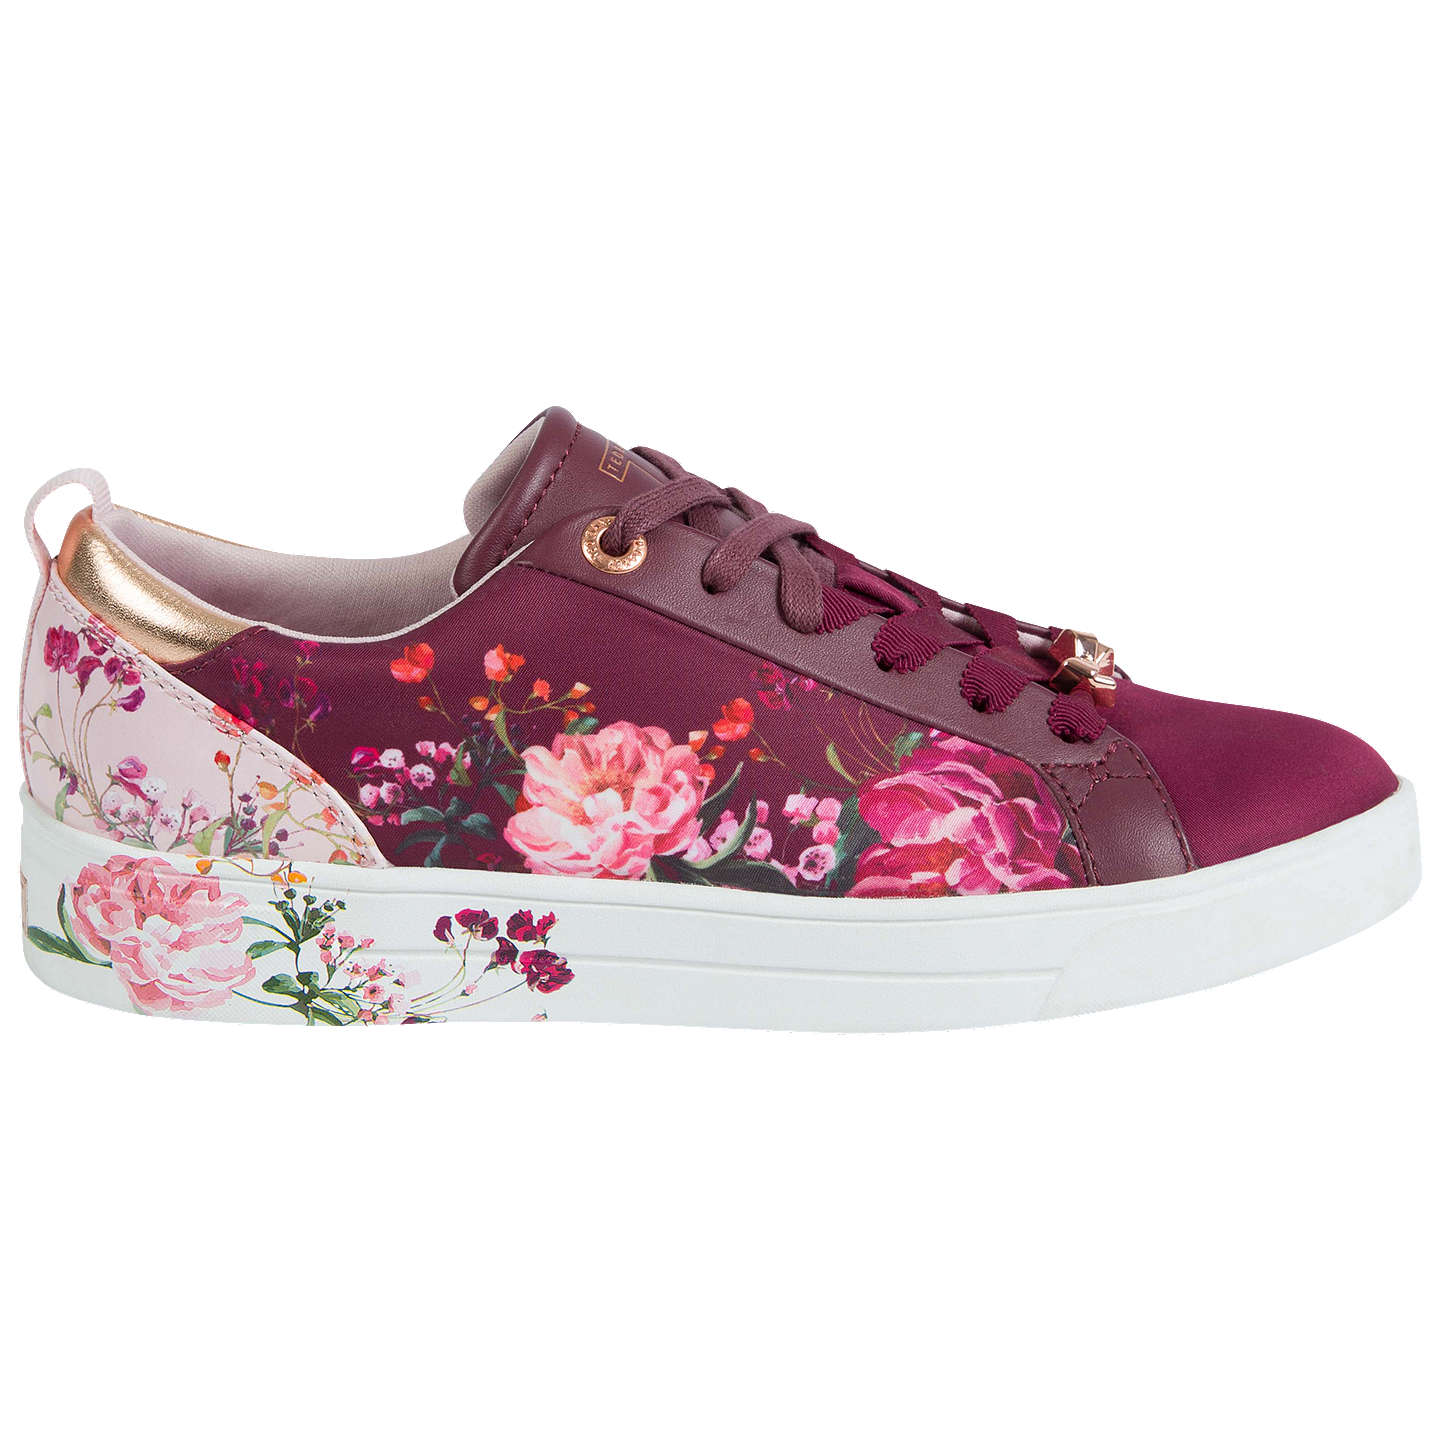 GIELLIT - Trainers - serenity Free Shipping With Mastercard Cheap Prices Reliable Extremely Cheap Online W37NFzyd